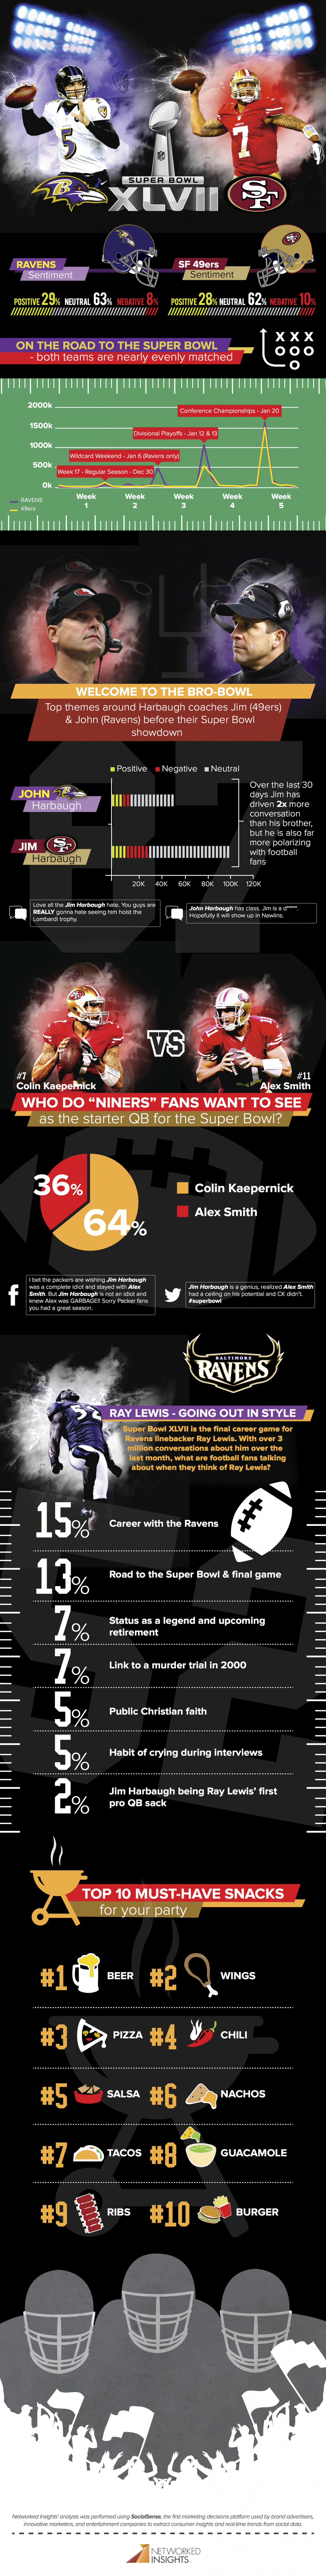 Super Bowl XLVII and Social Media Infographic